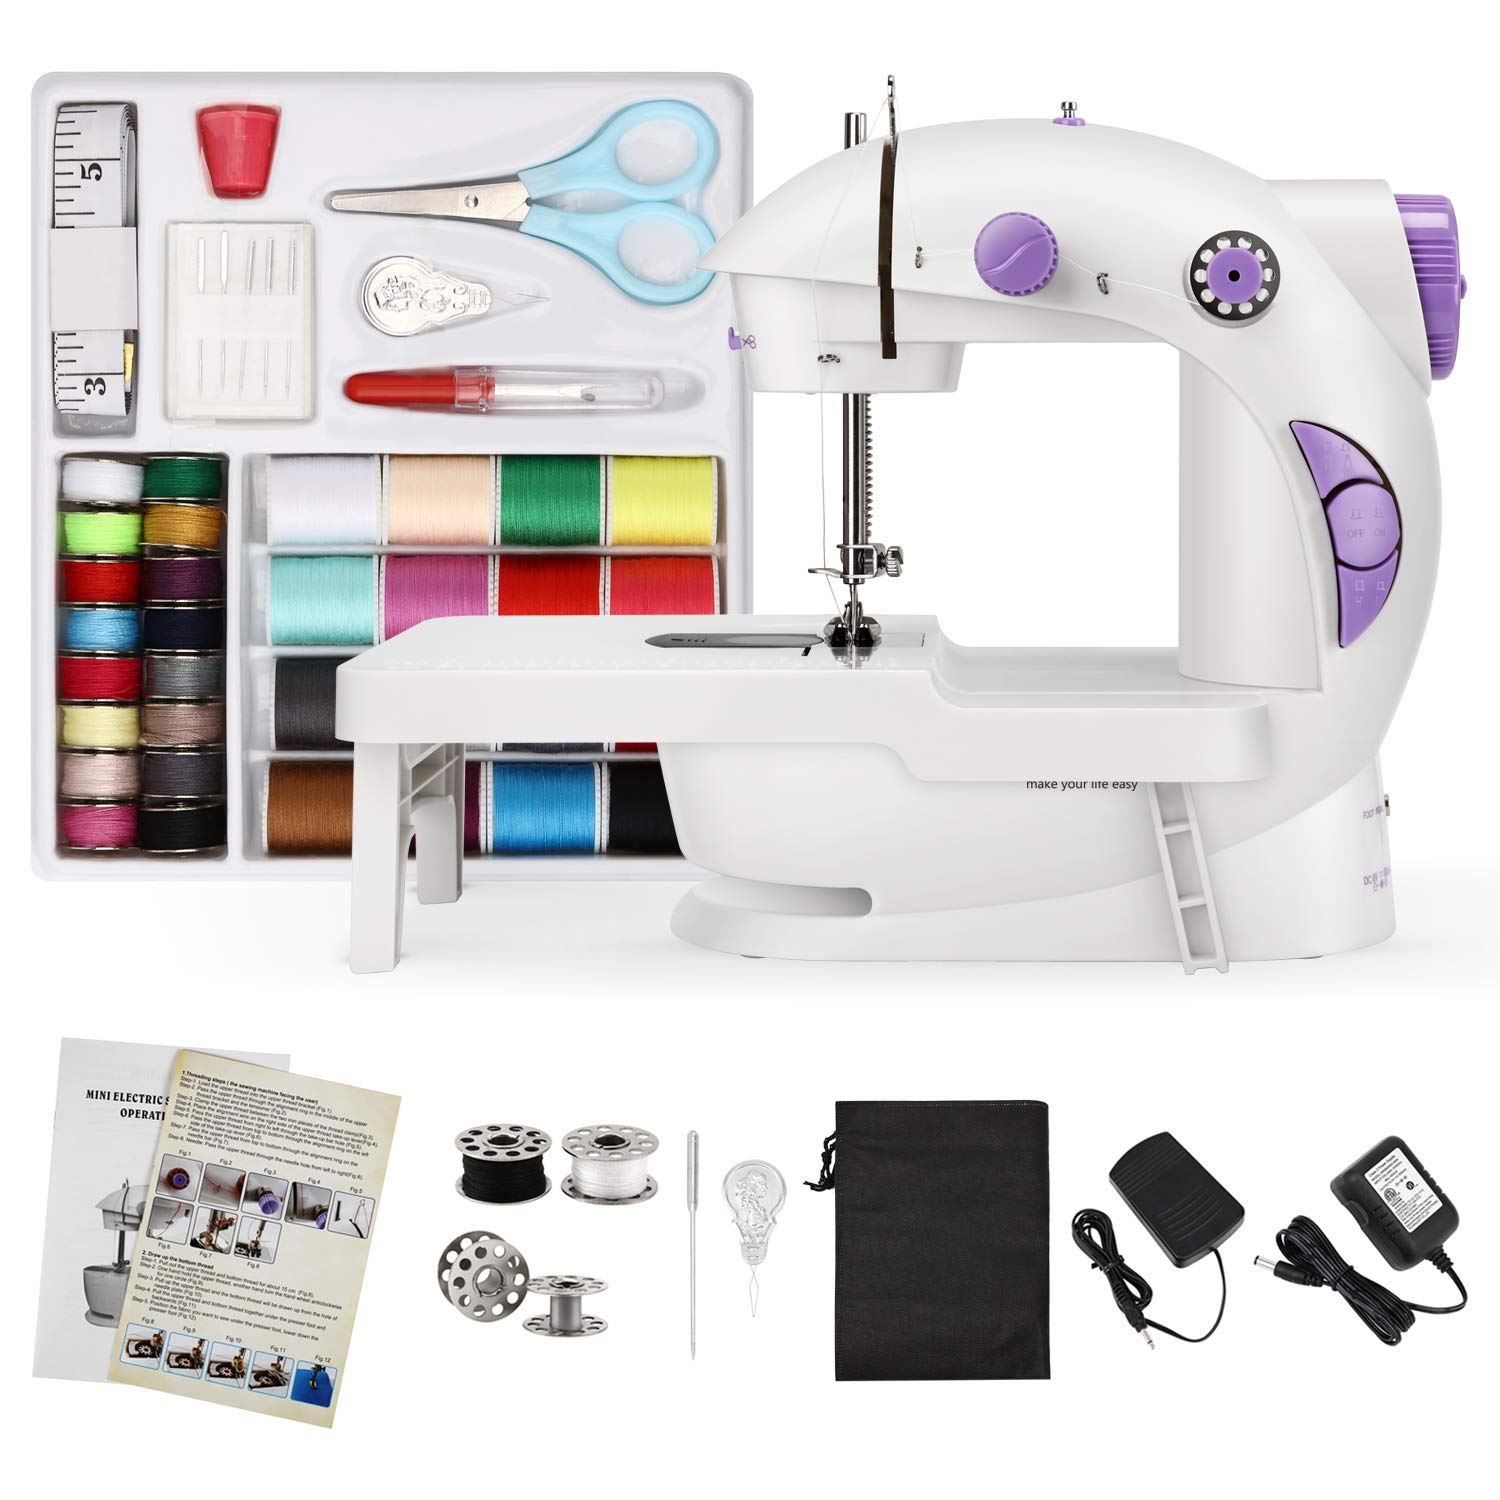 Magicfly Mini Sewing Machine for Beginner, Dual Speed Portable Sewing Machine Machine with Extension Table, Light, Sewing Kit for Household, Travel by Magicfly